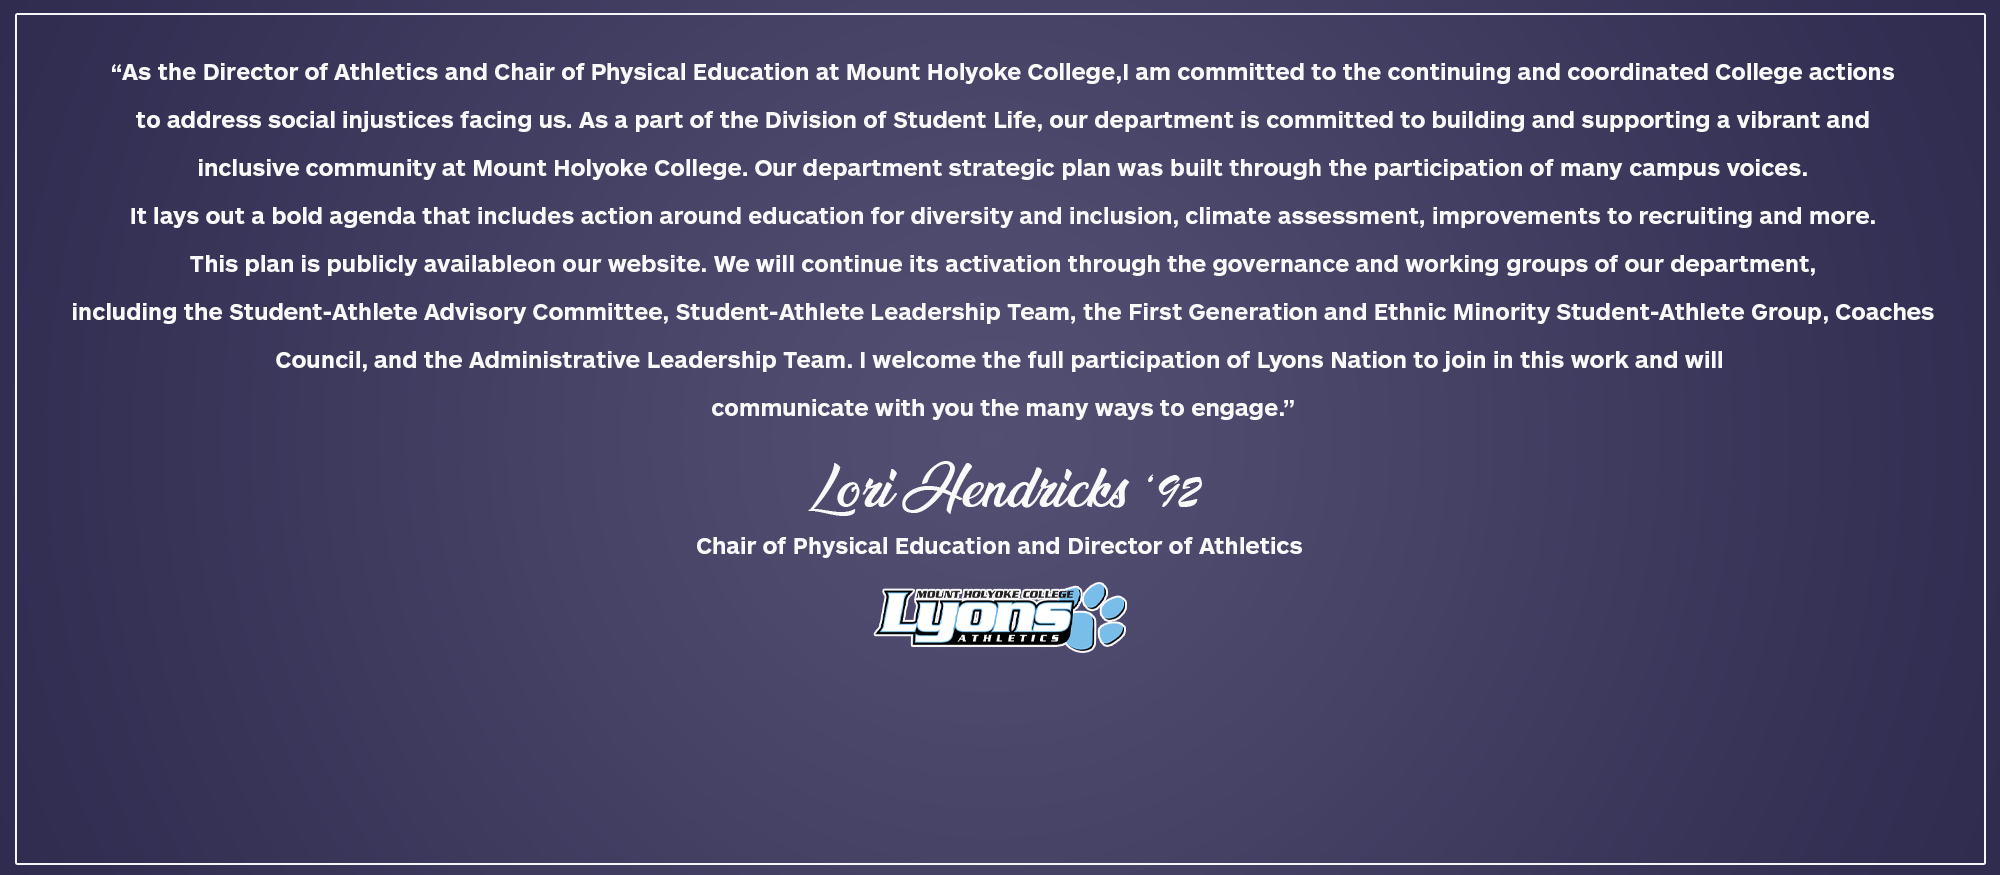 A Letter from Mount Holyoke College Director of Athletics, Lori Hendricks '92